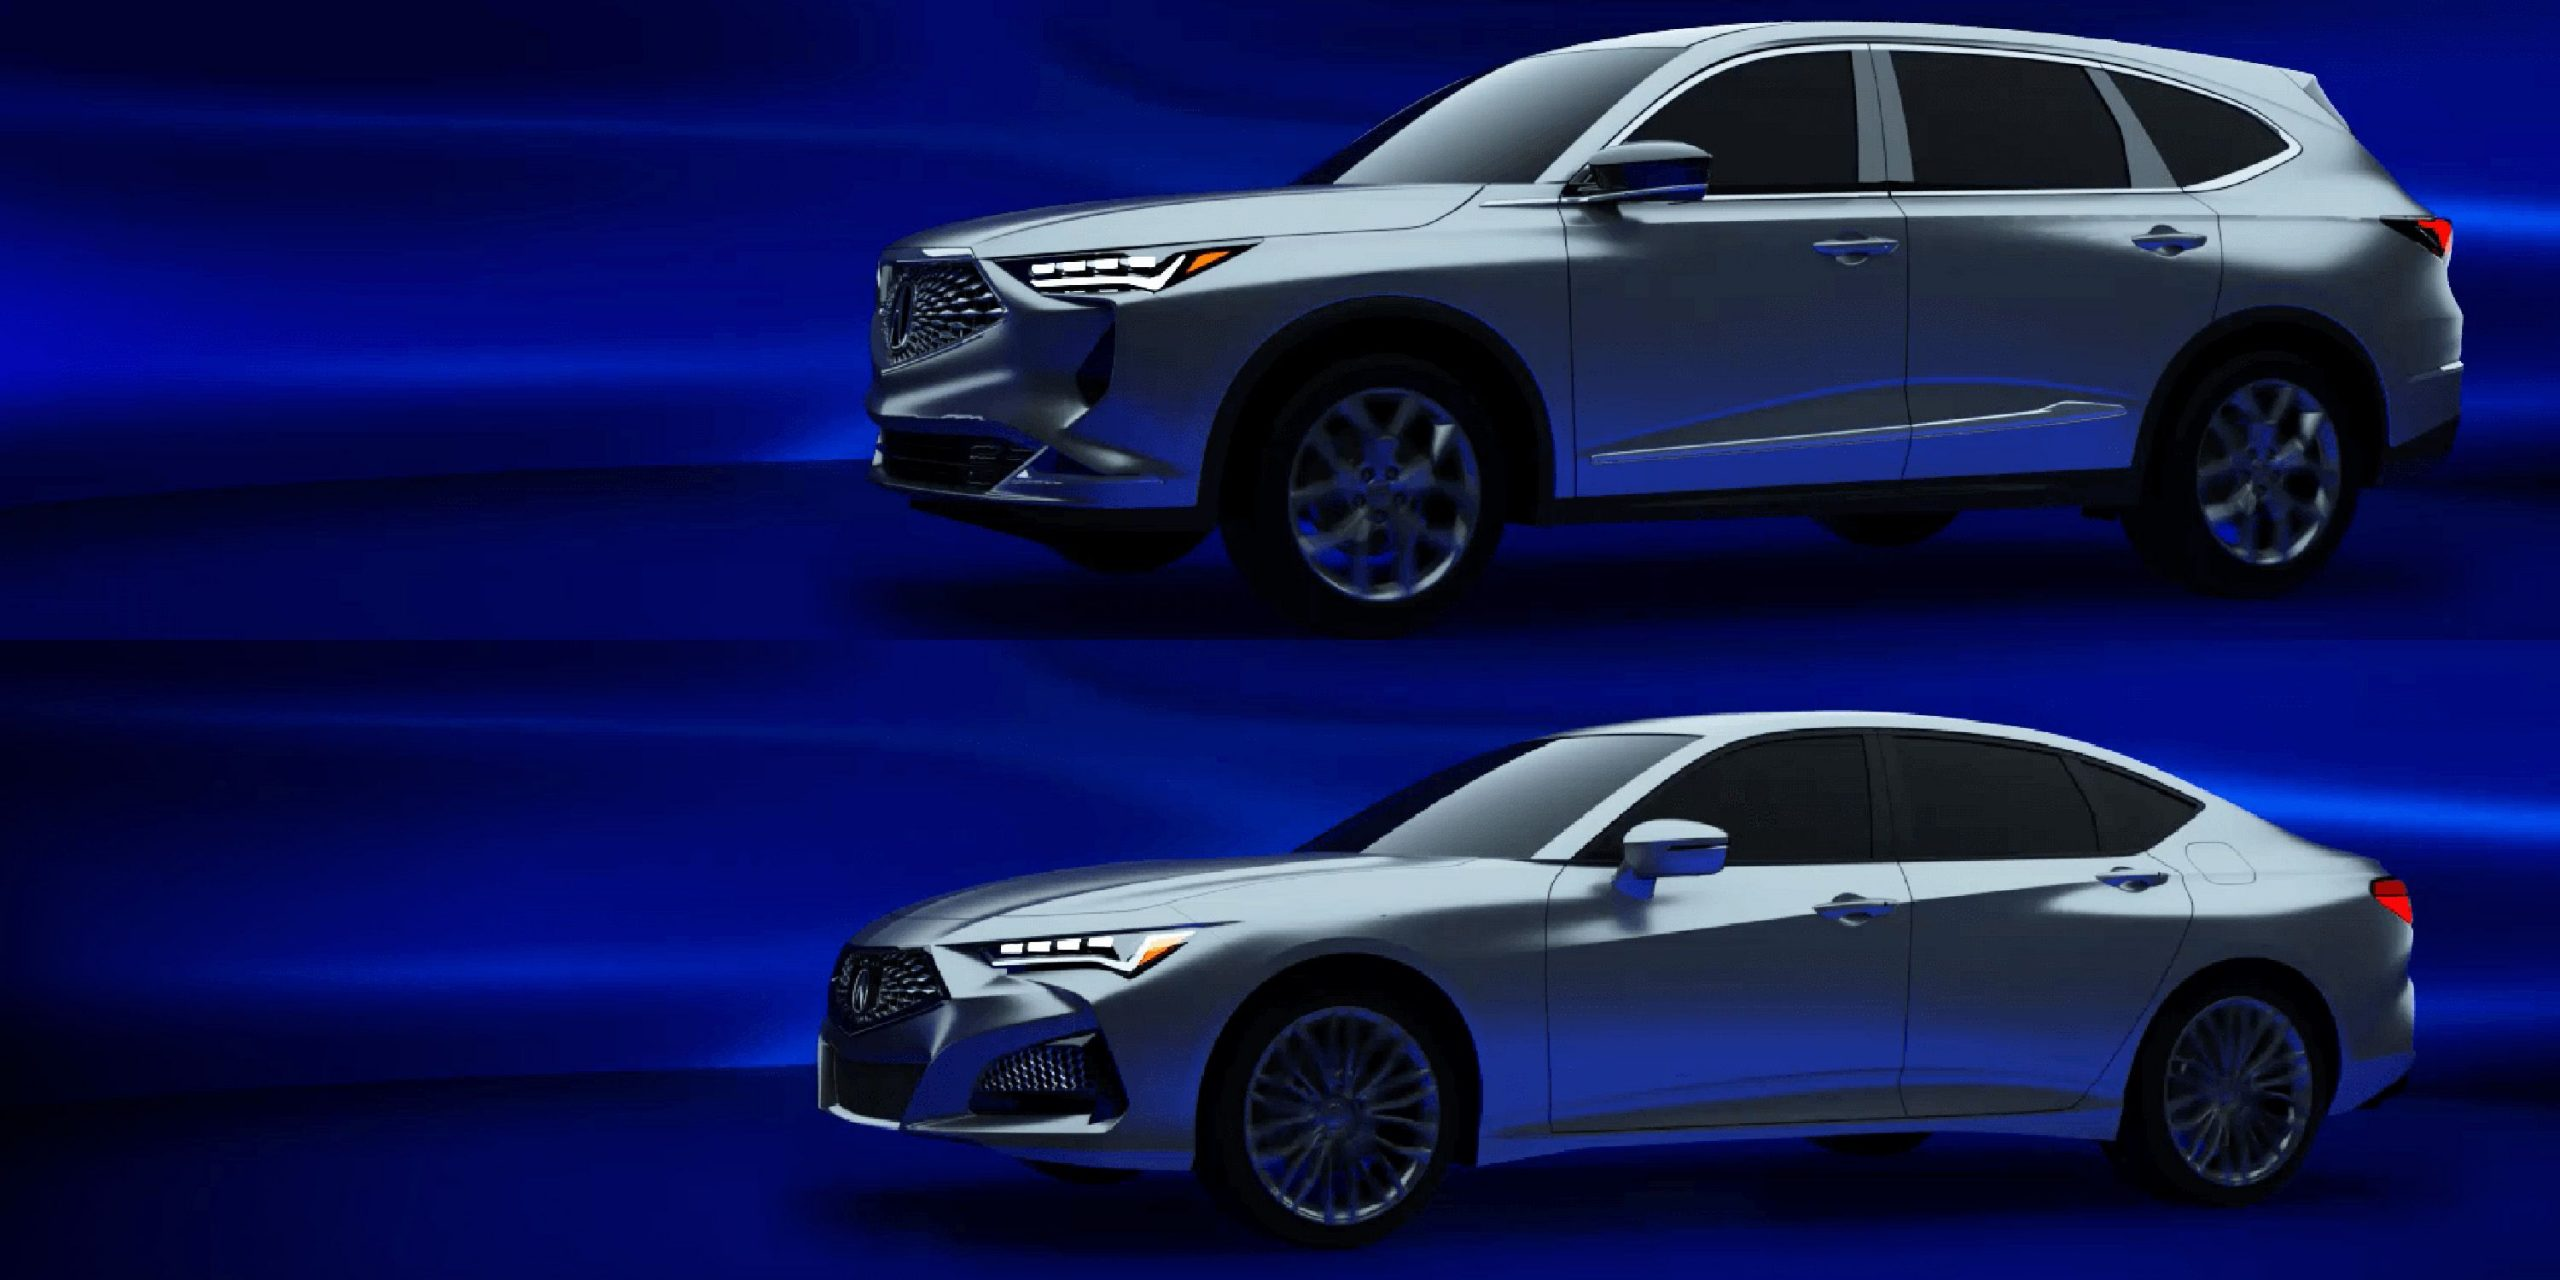 2021 Acura MDX Updates: The Type S is Coming - Future SUVs